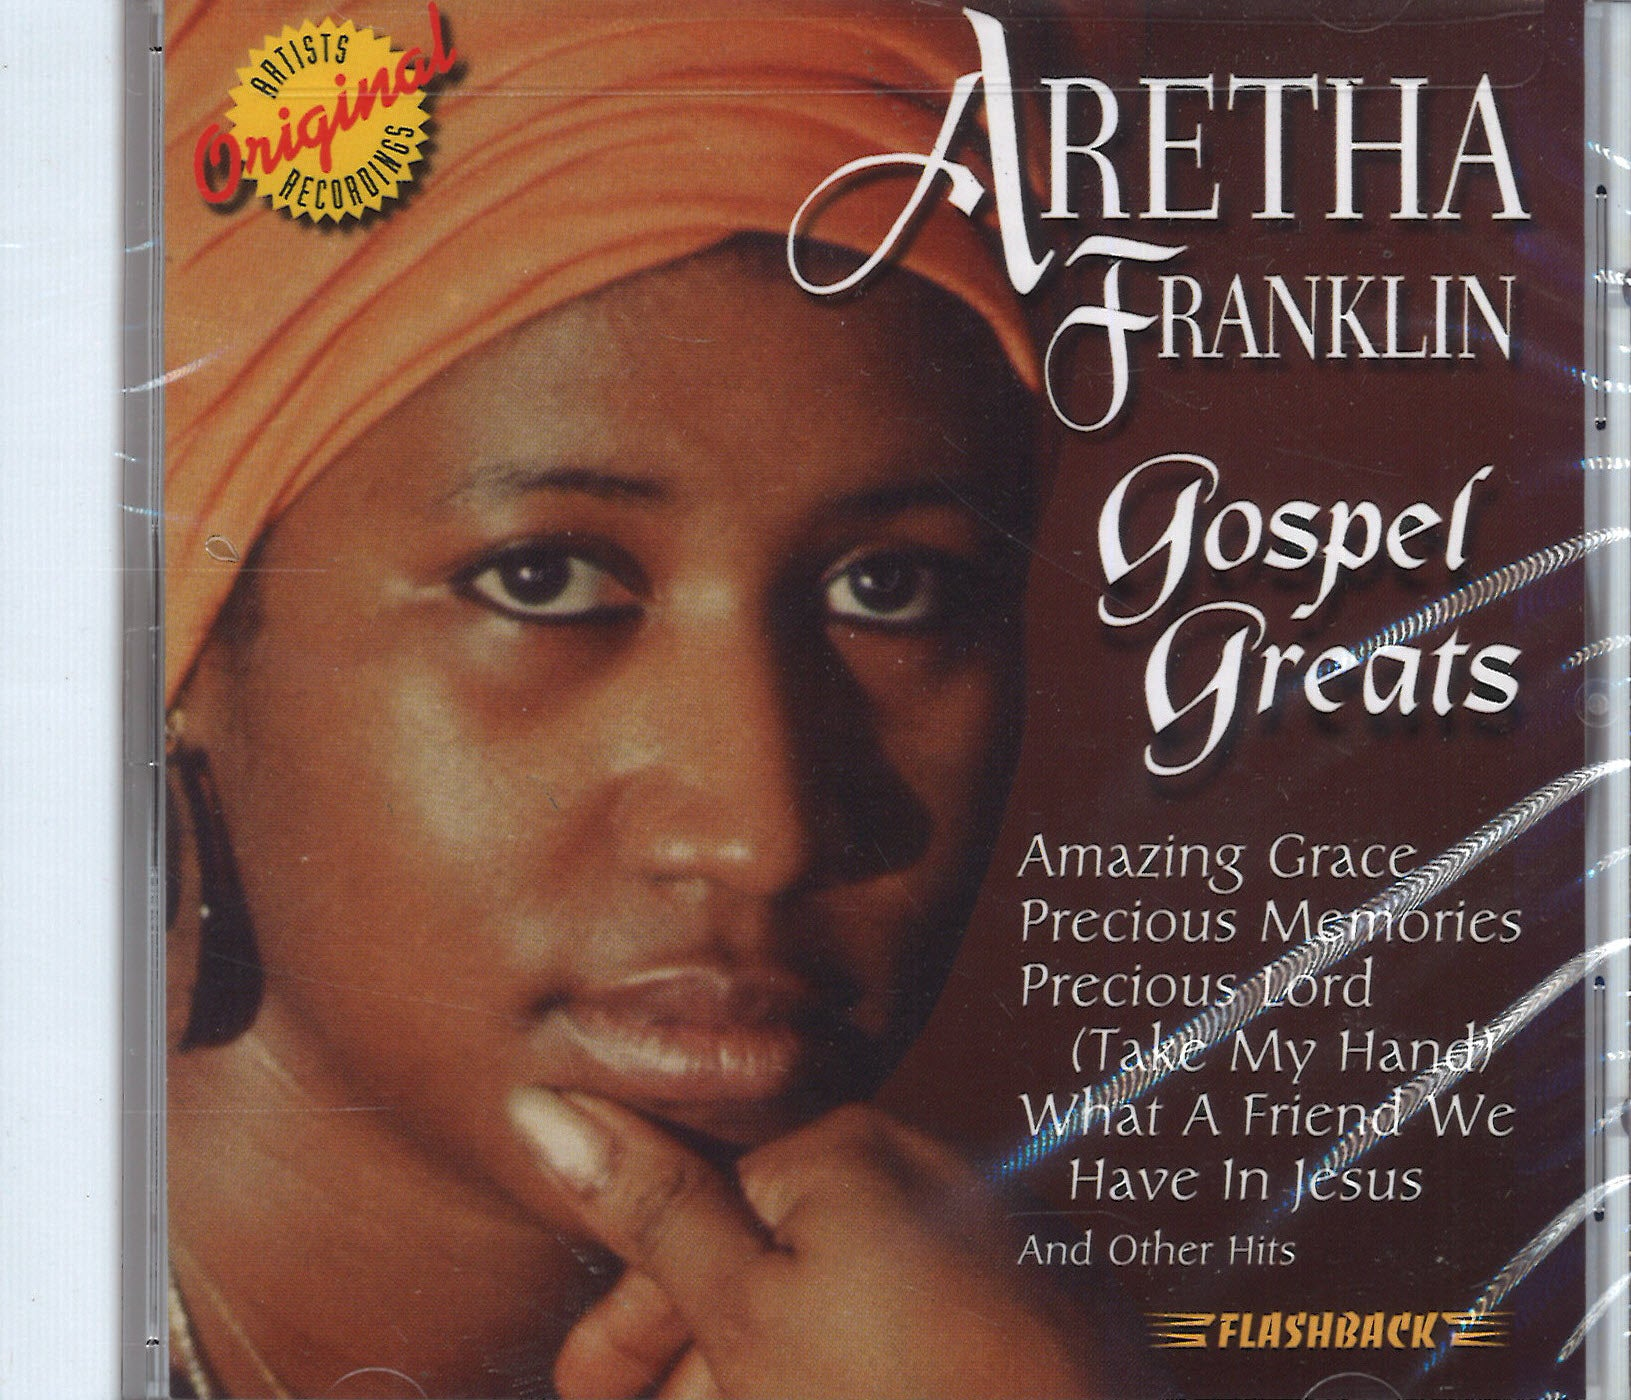 Aretha Franklin Gospel Greats